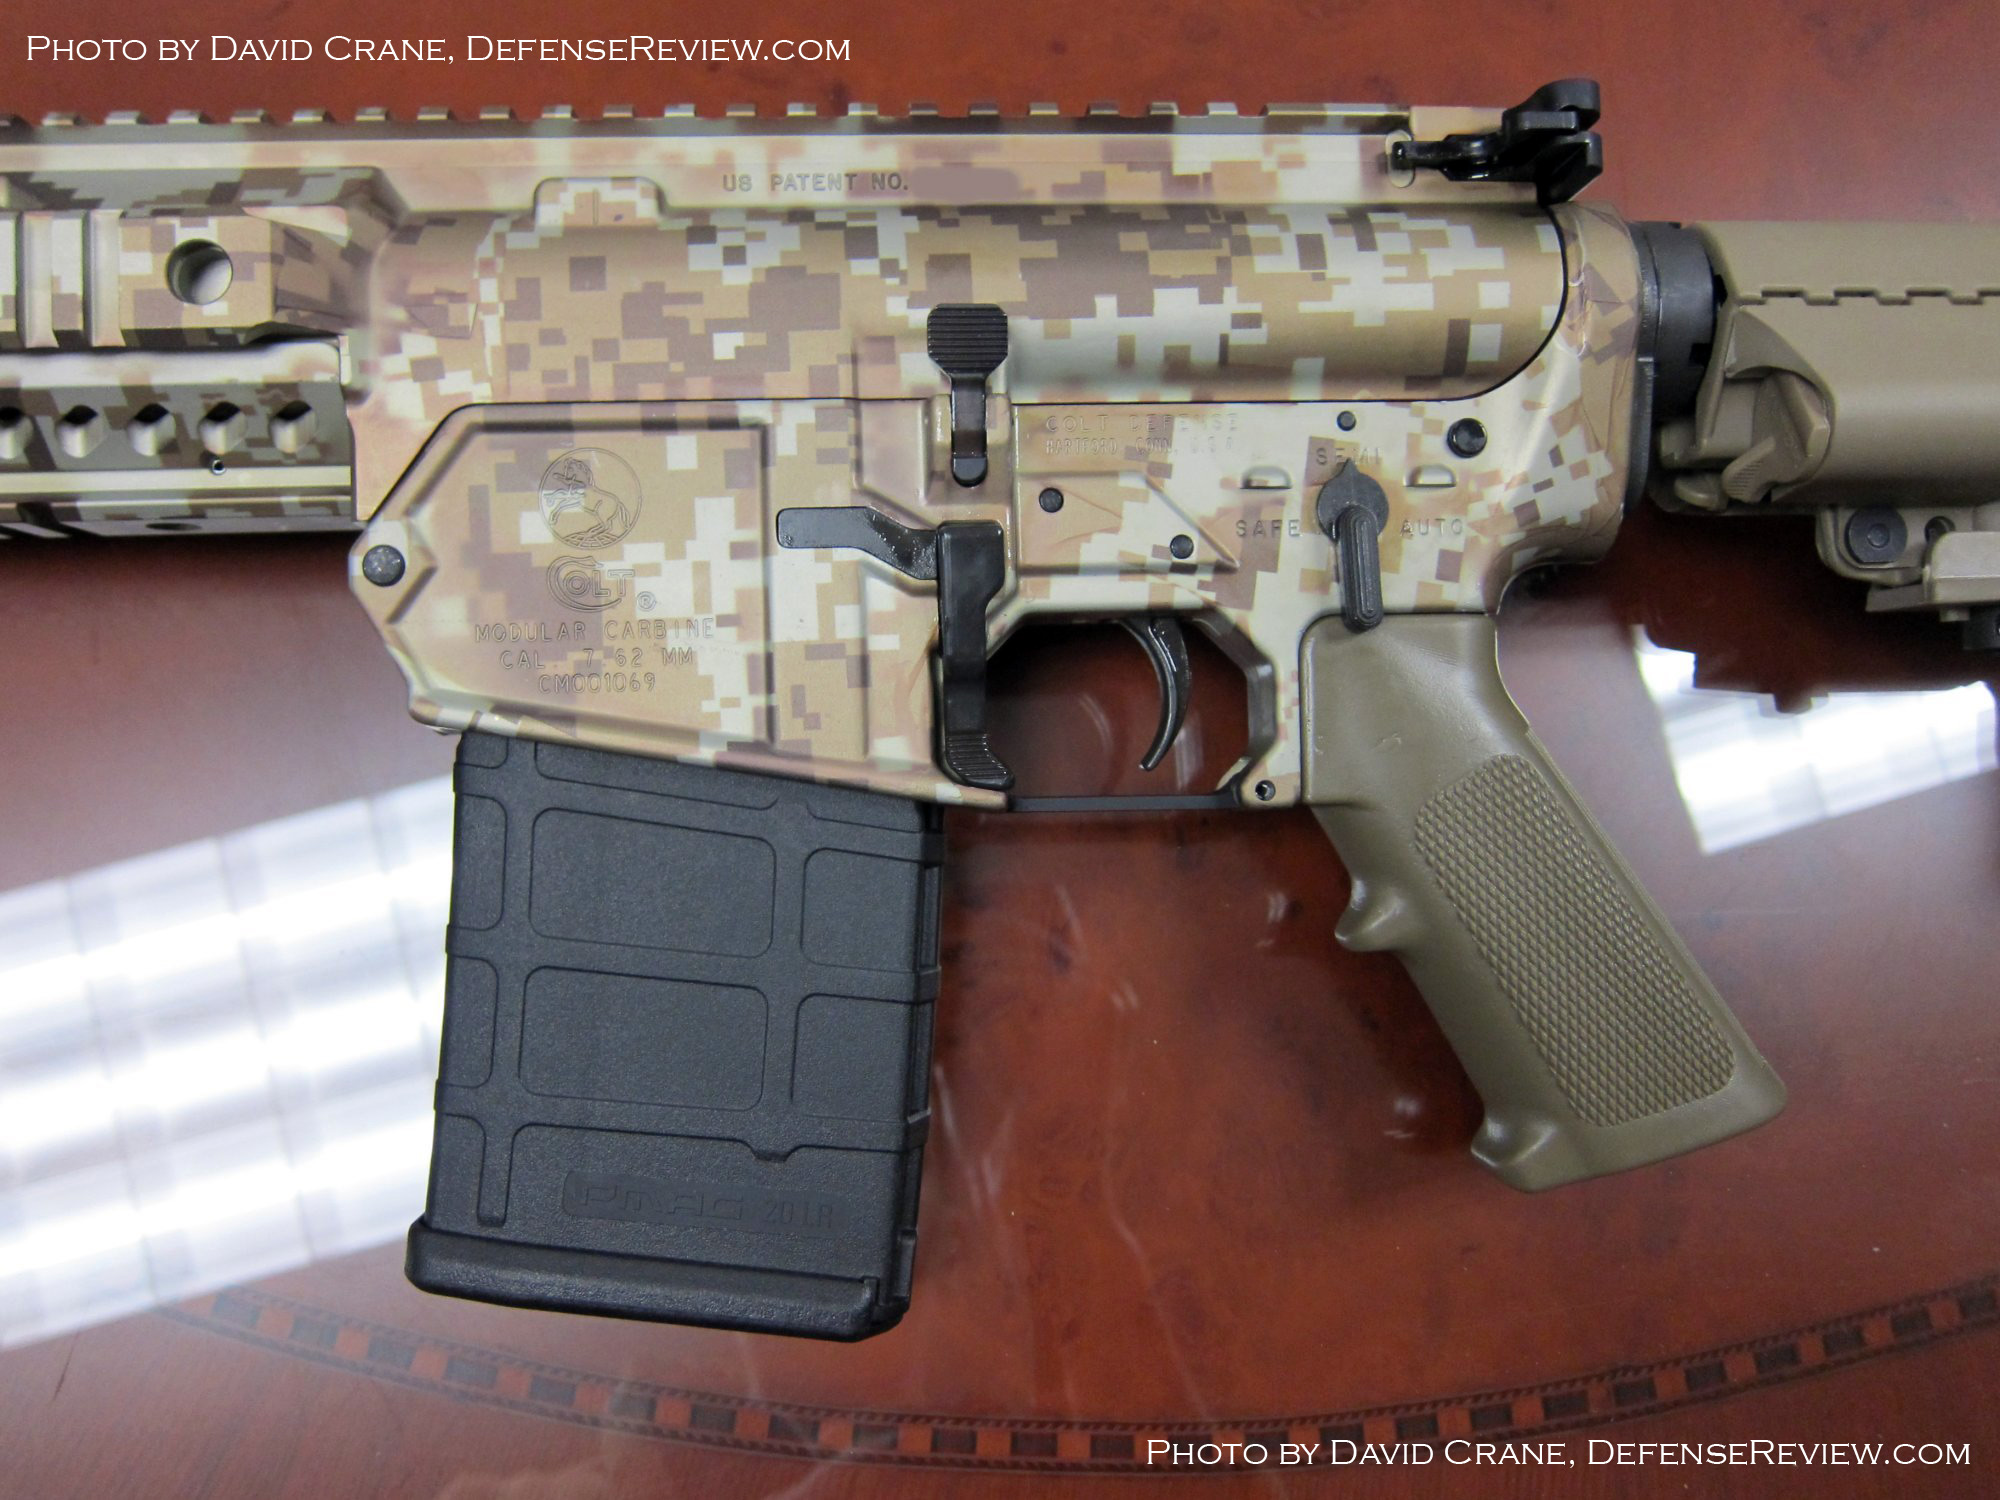 Colt CM901 AR Carbine SBR 7.62mm David Crane DefenseReview.com 24 <!  :en  >DR Exclusive First Look!: SCAR Who? Meet the Colt Modular Carbine (CMC) Model CM901 Multi Caliber 7.62mm NATO Battle Rifle / 5.56mm NATO Assault Rifle for U.S. Military Special Operations Forces (SOF) and General Infantry Forces (GIF). DefenseReview (DR) Reports (Photos and Video!) <!  :  >